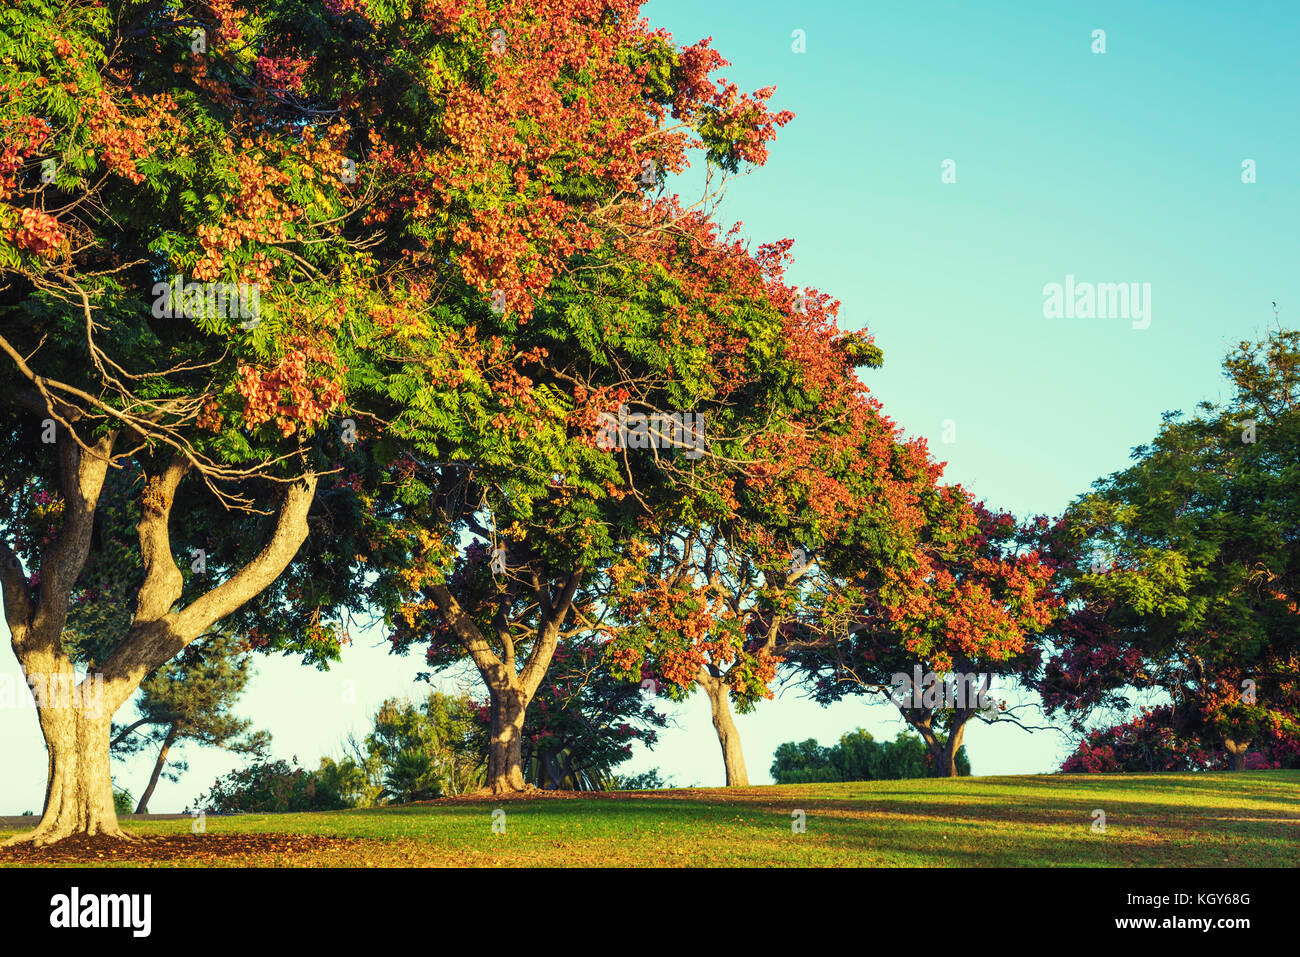 Colorful trees photographed in fall in a park setting Stock Photo ...